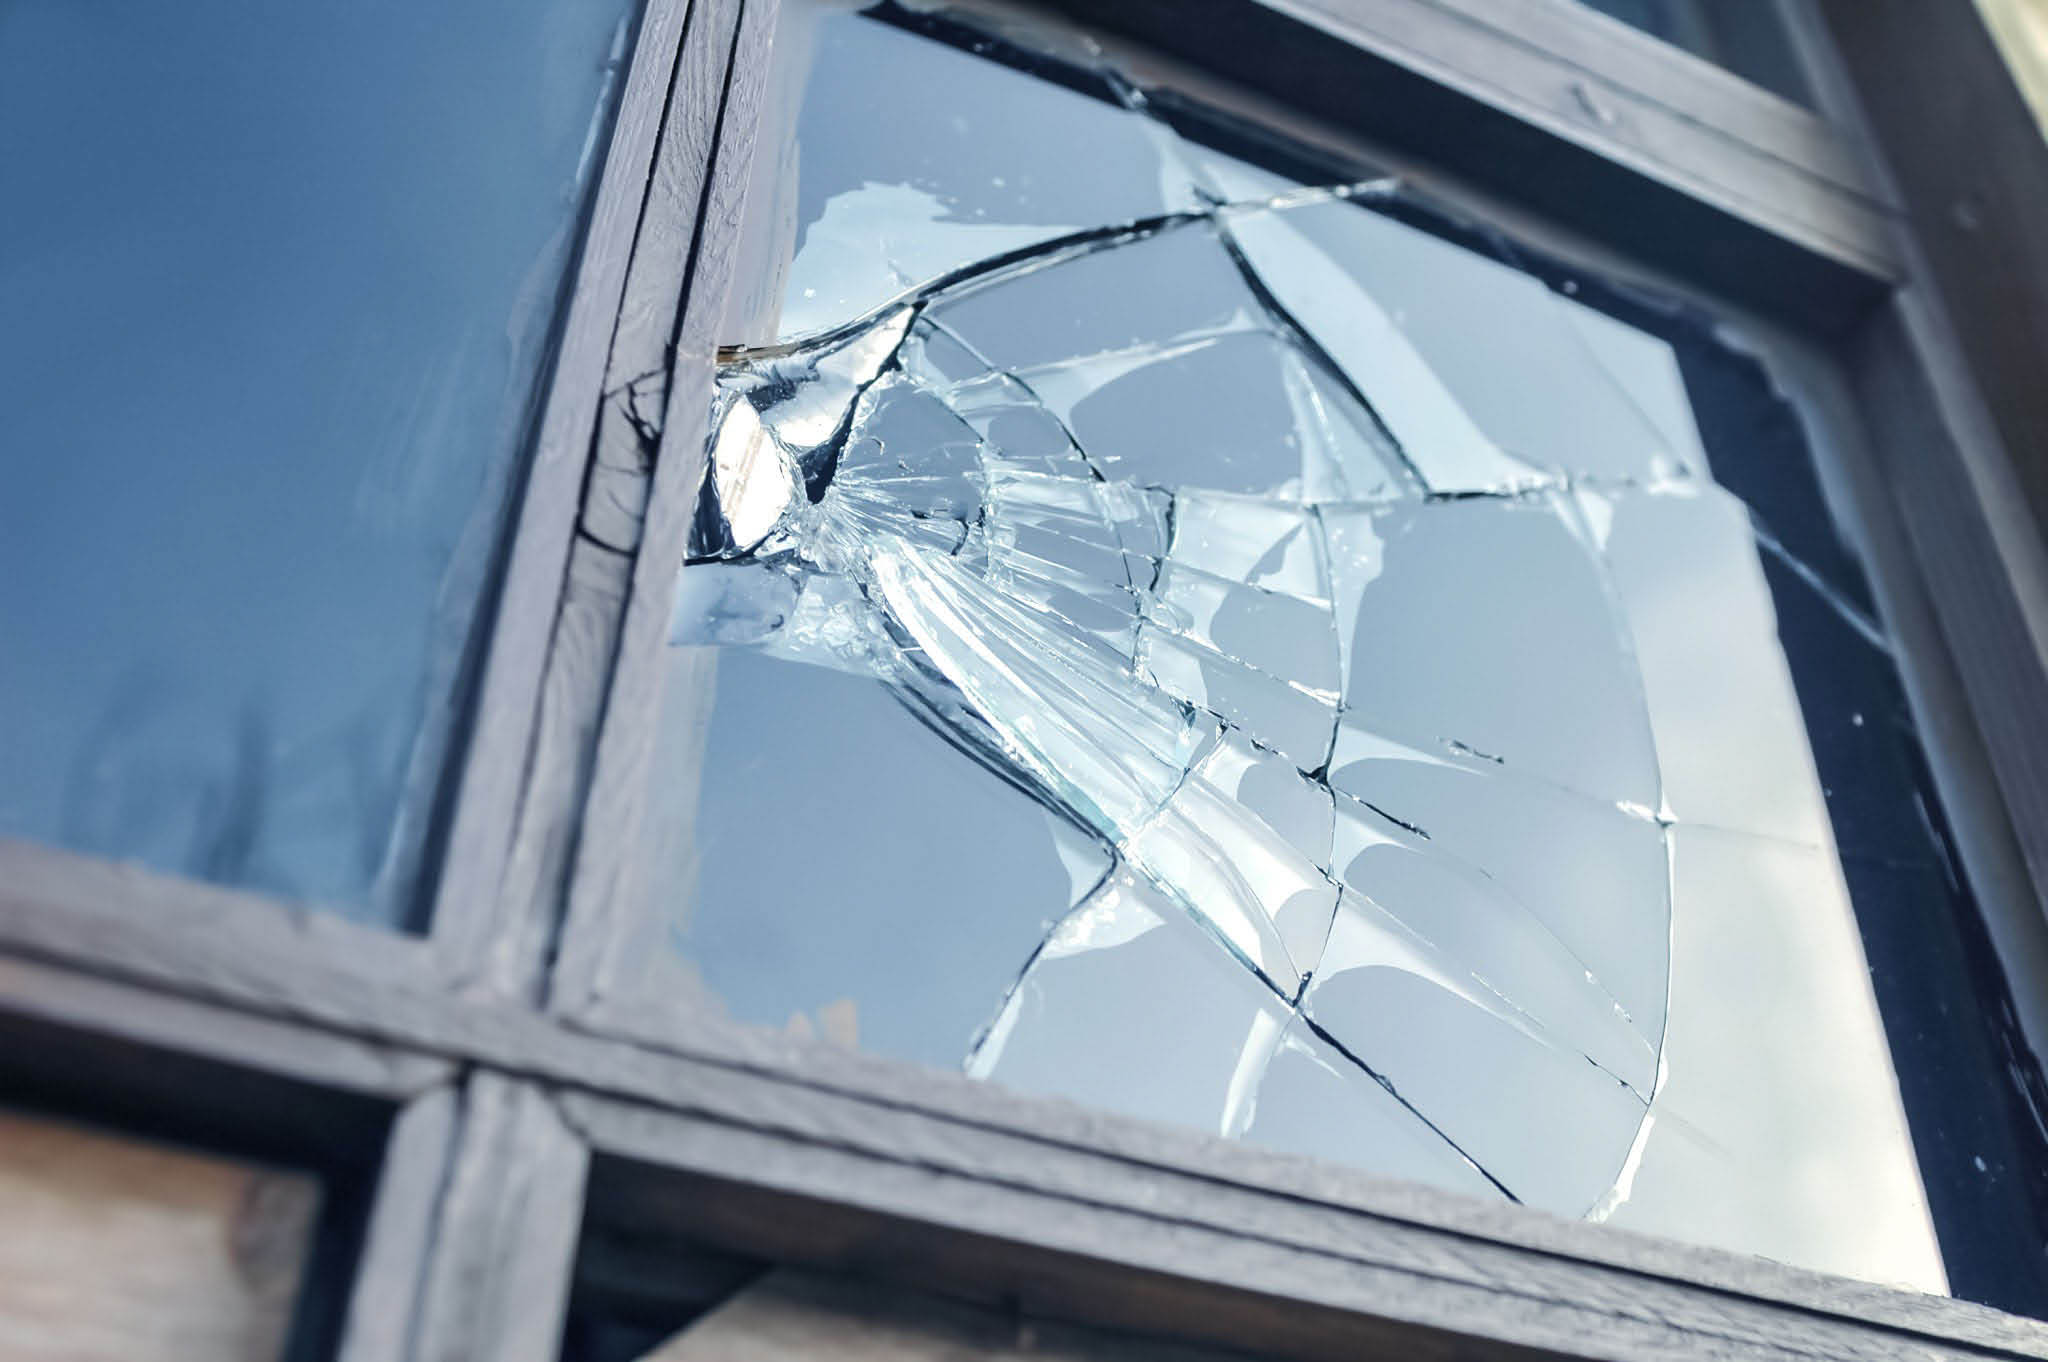 Liberty Glass & Blinds in Tacoma, WA can repair your broken window - window repair - window replacement